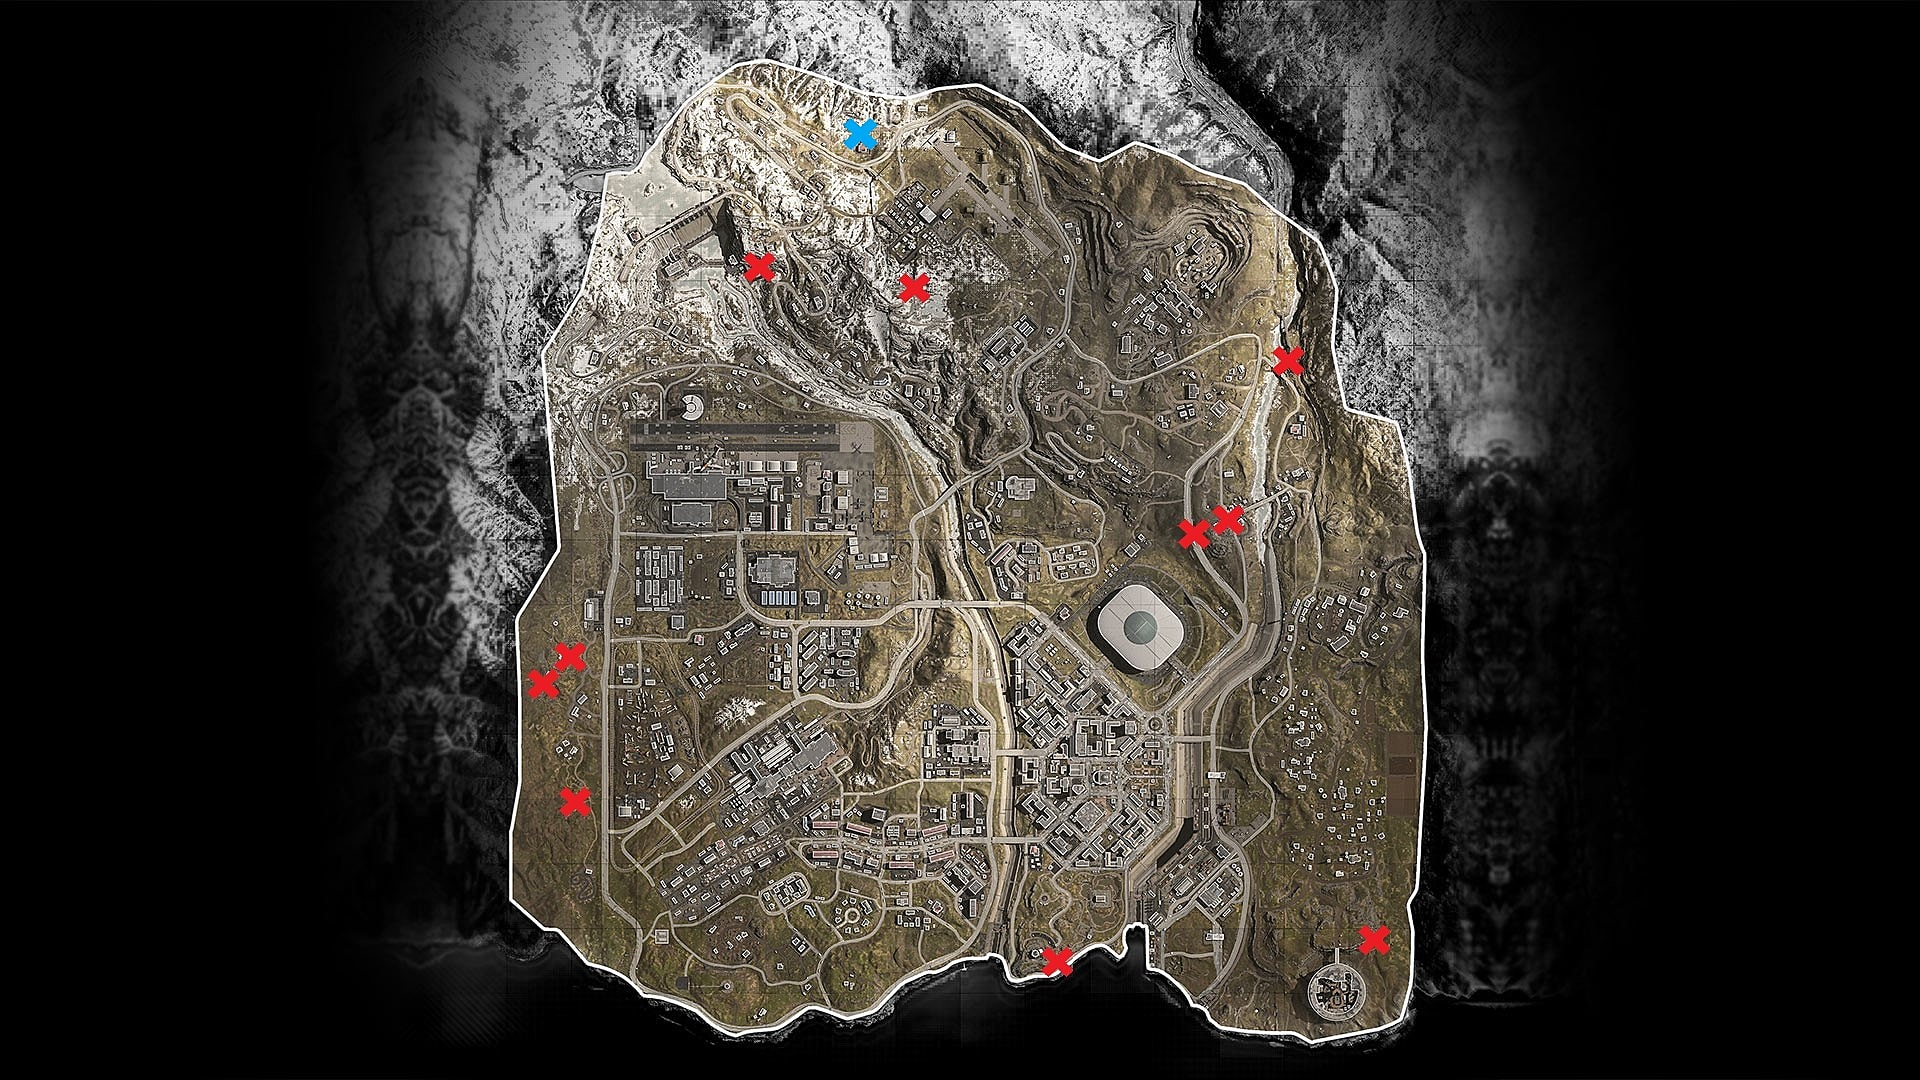 Call Of Duty Warzone Bunker 11 How To Find It And The Hidden Phones Call Of Duty Warzone